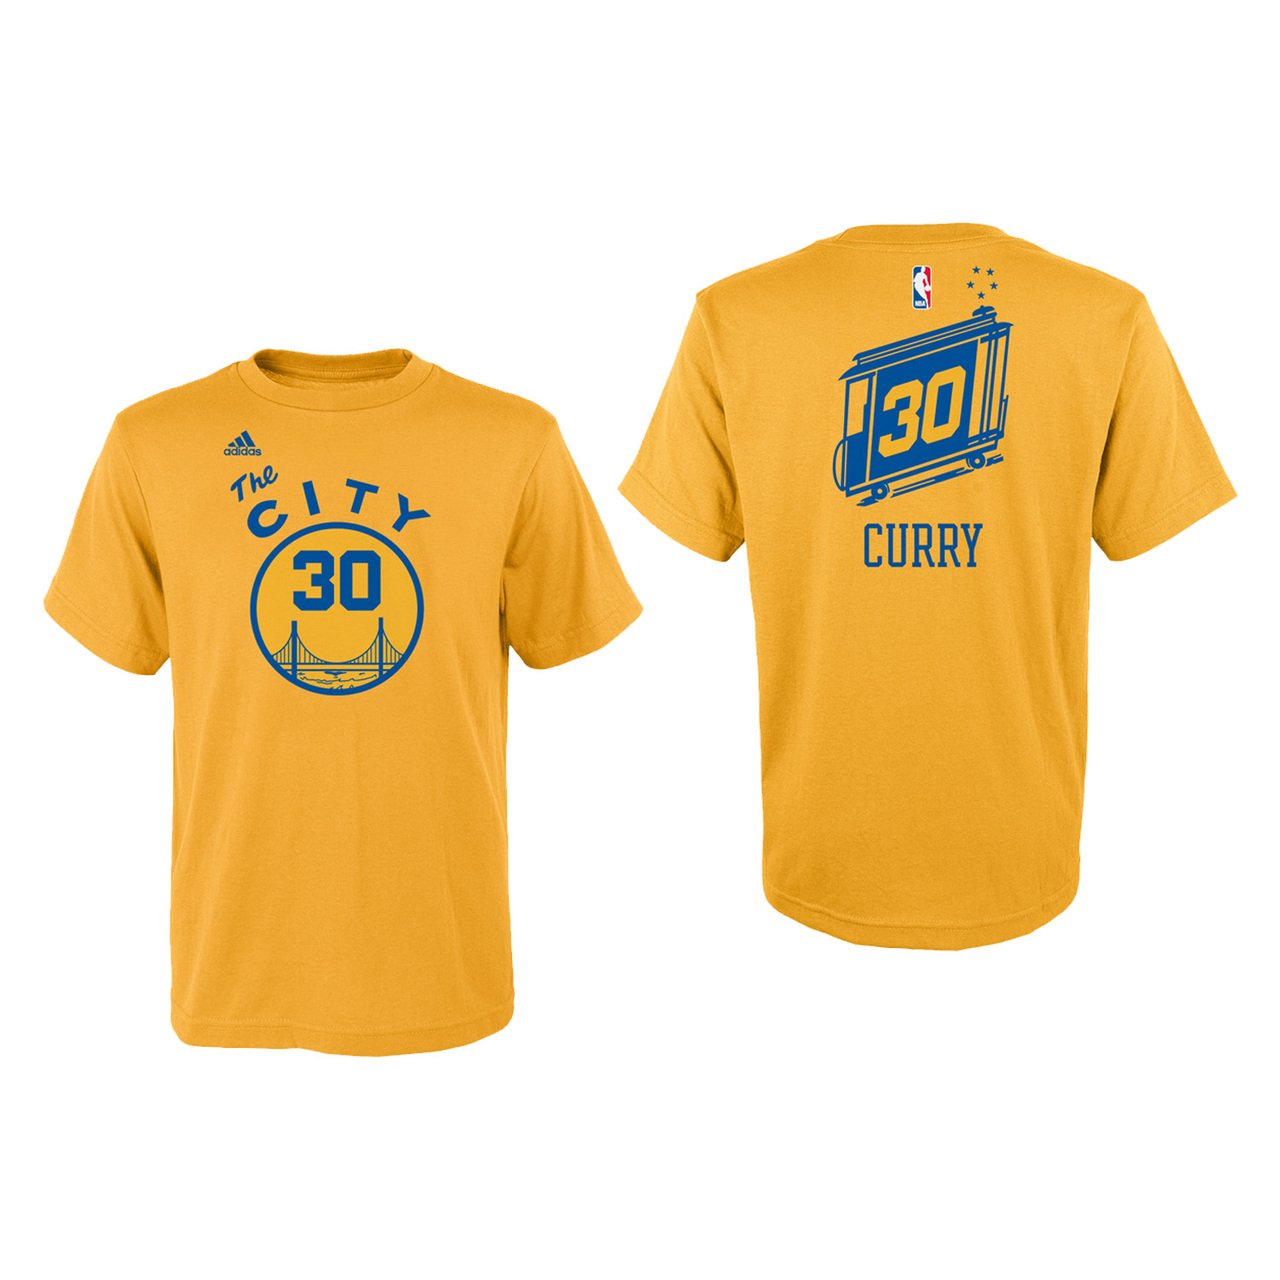 0c1d086e87e55 Golden State Warriors Stephen Curry Adidas Youth Gold The City Shirt Boys  8-20